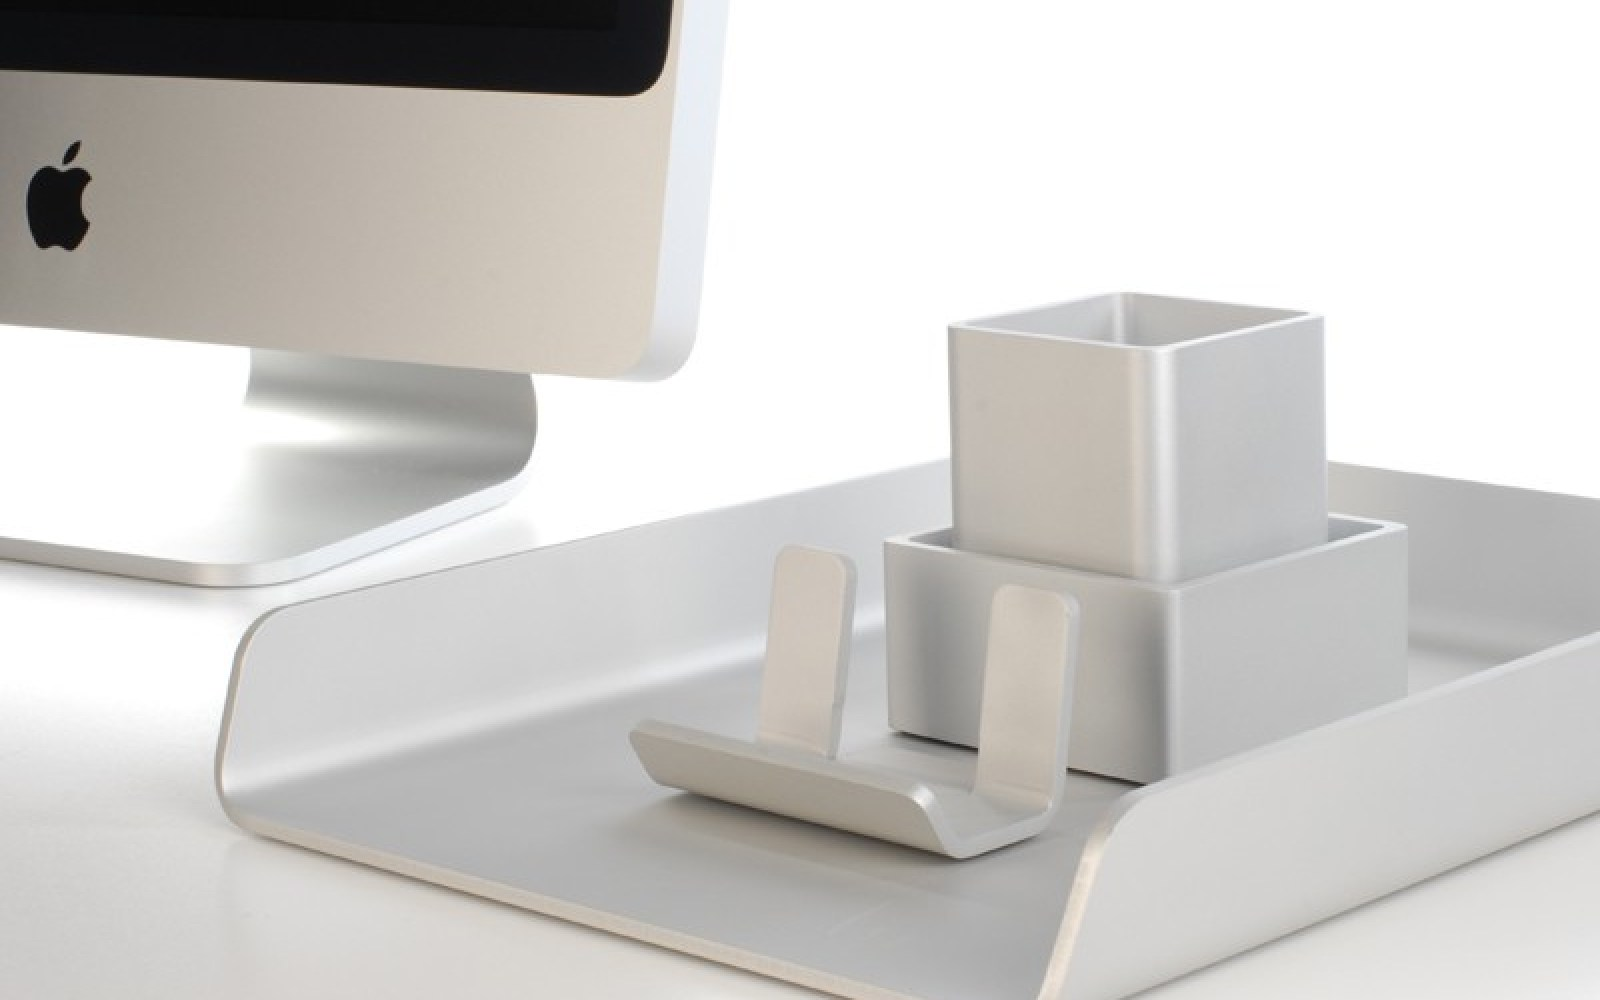 Wishful thinking: Why it'd be nice if Apple created a line of Ive-designed office technology products